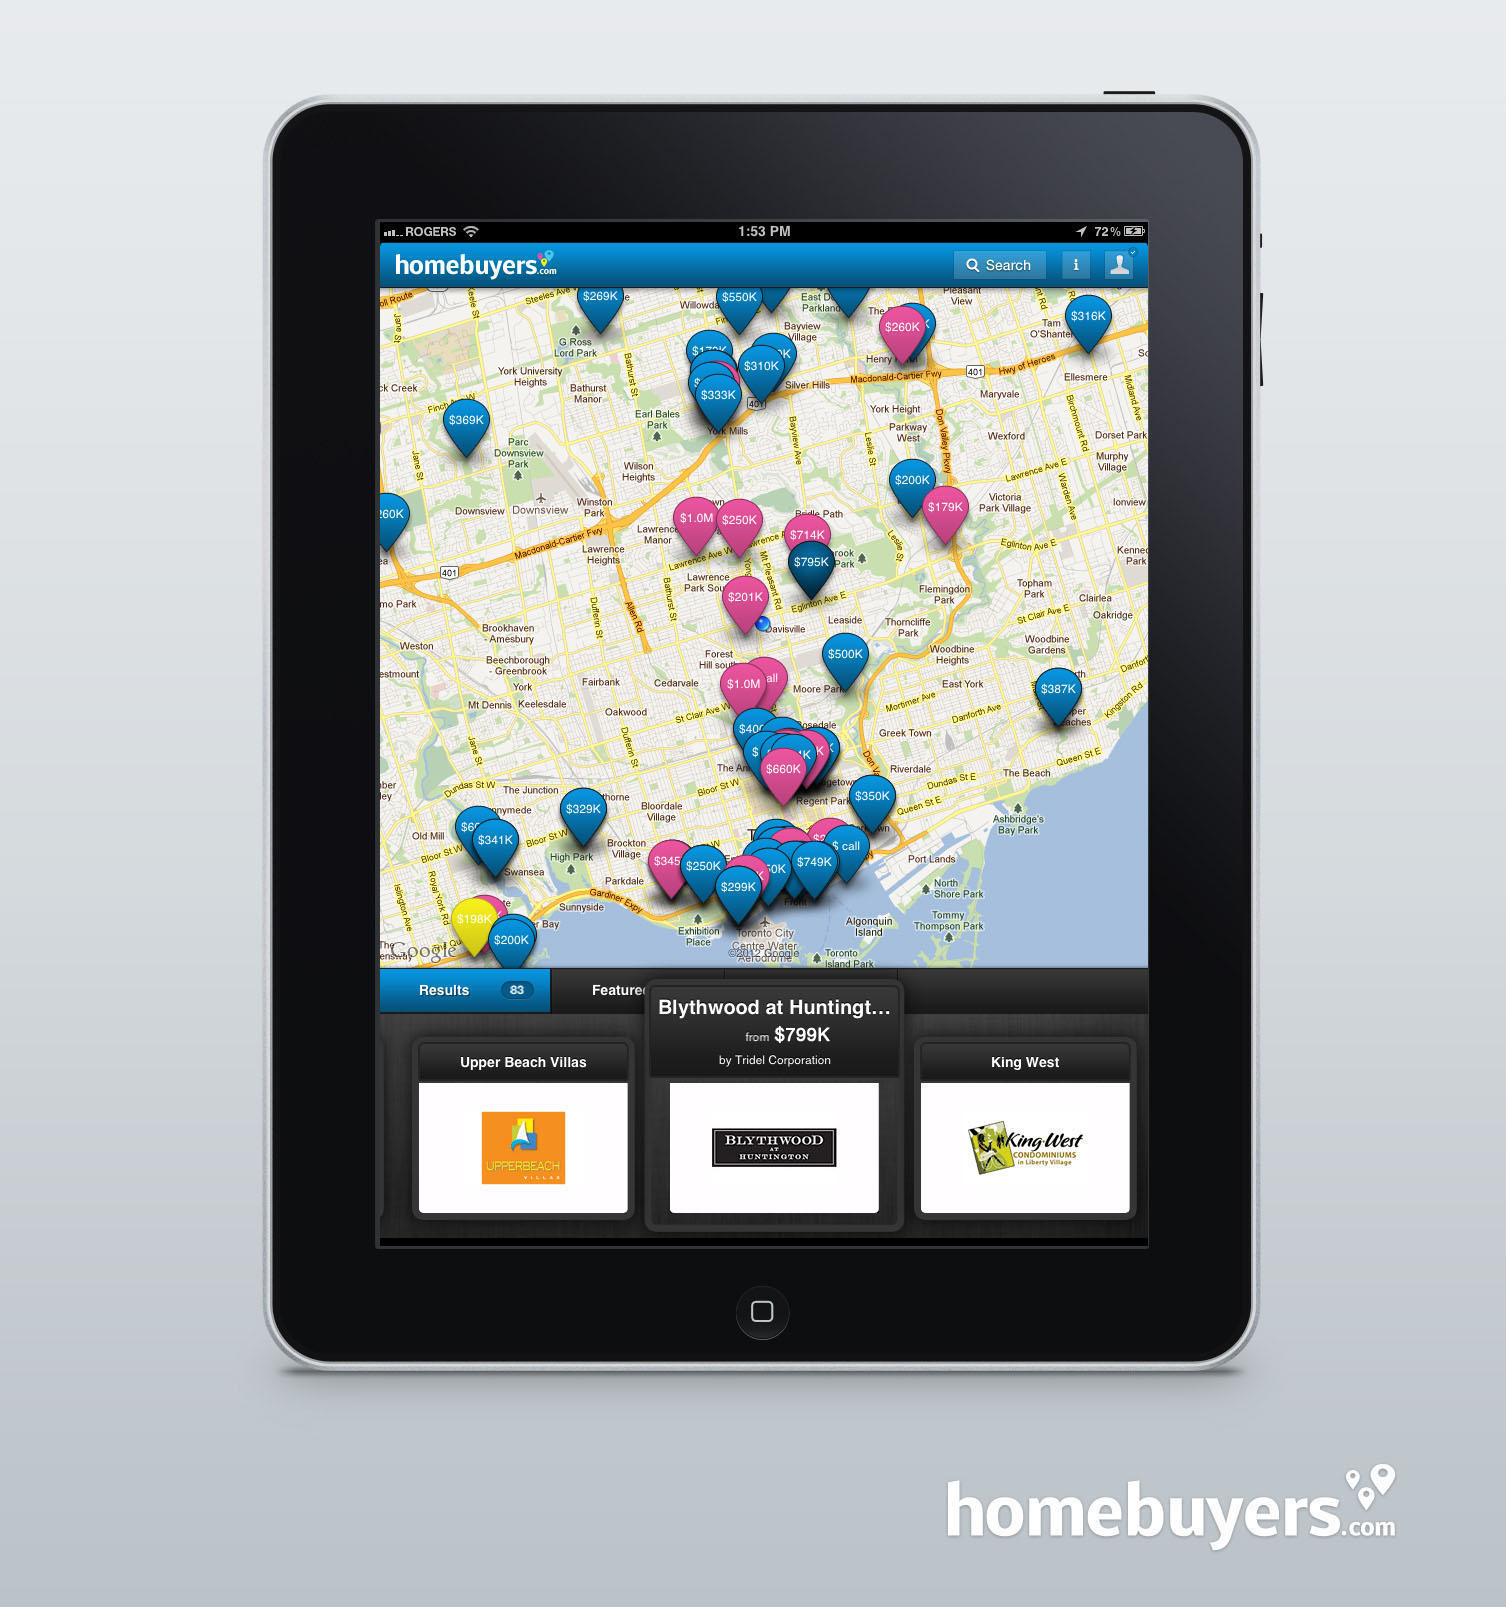 NEW HOME BUYERS NETWORK - New iPad app